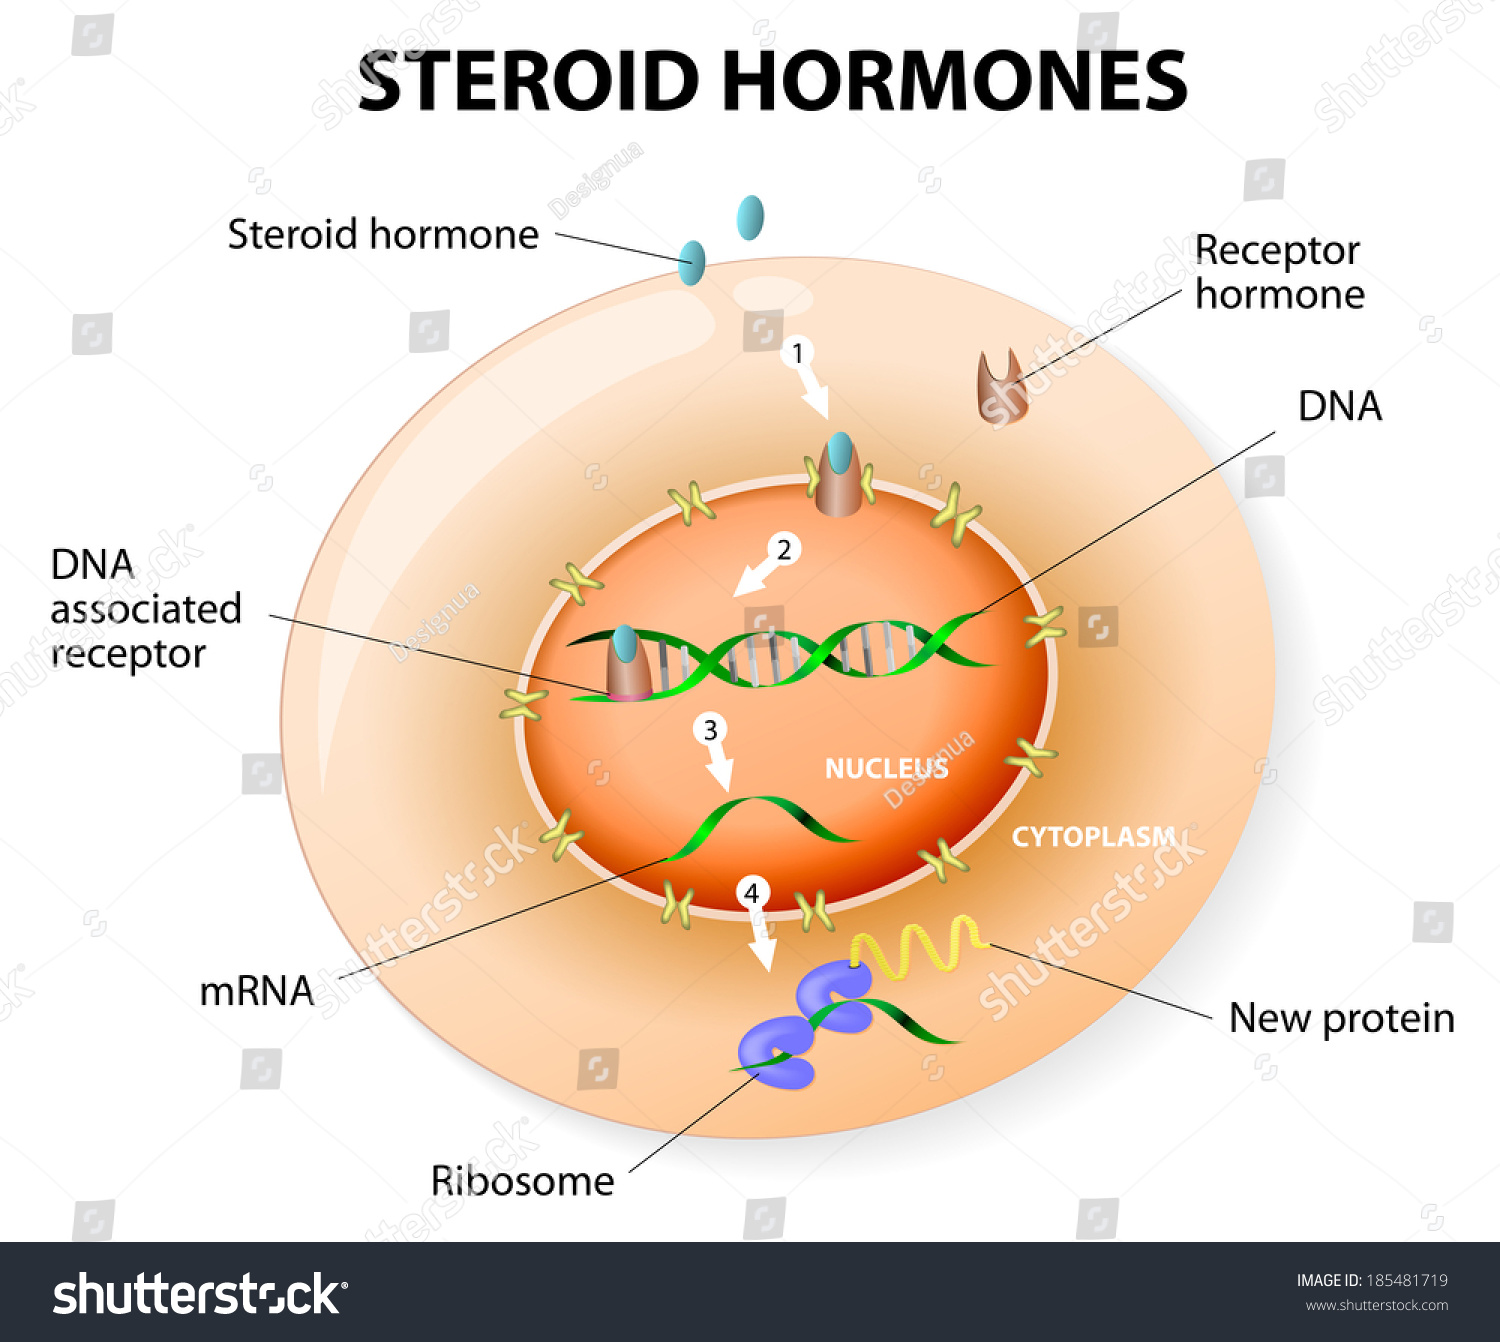 anabolic steroid cause cancer